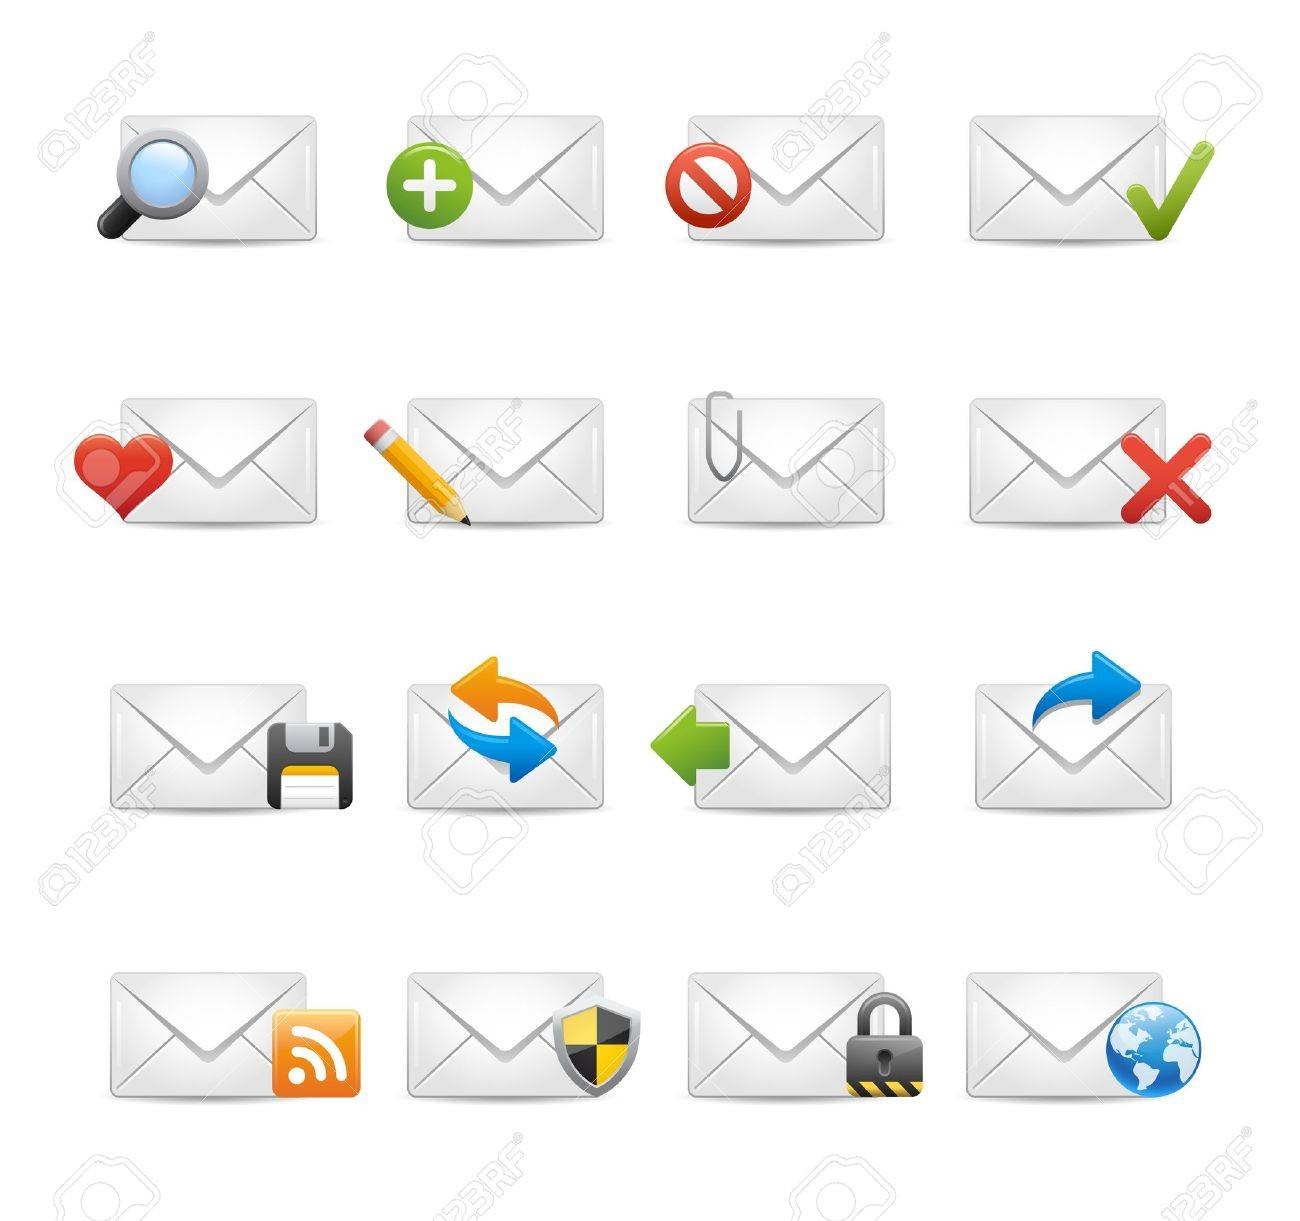 e-mail Icons - Set 1 of 3 -- Soft Series Stock Vector - 13199860